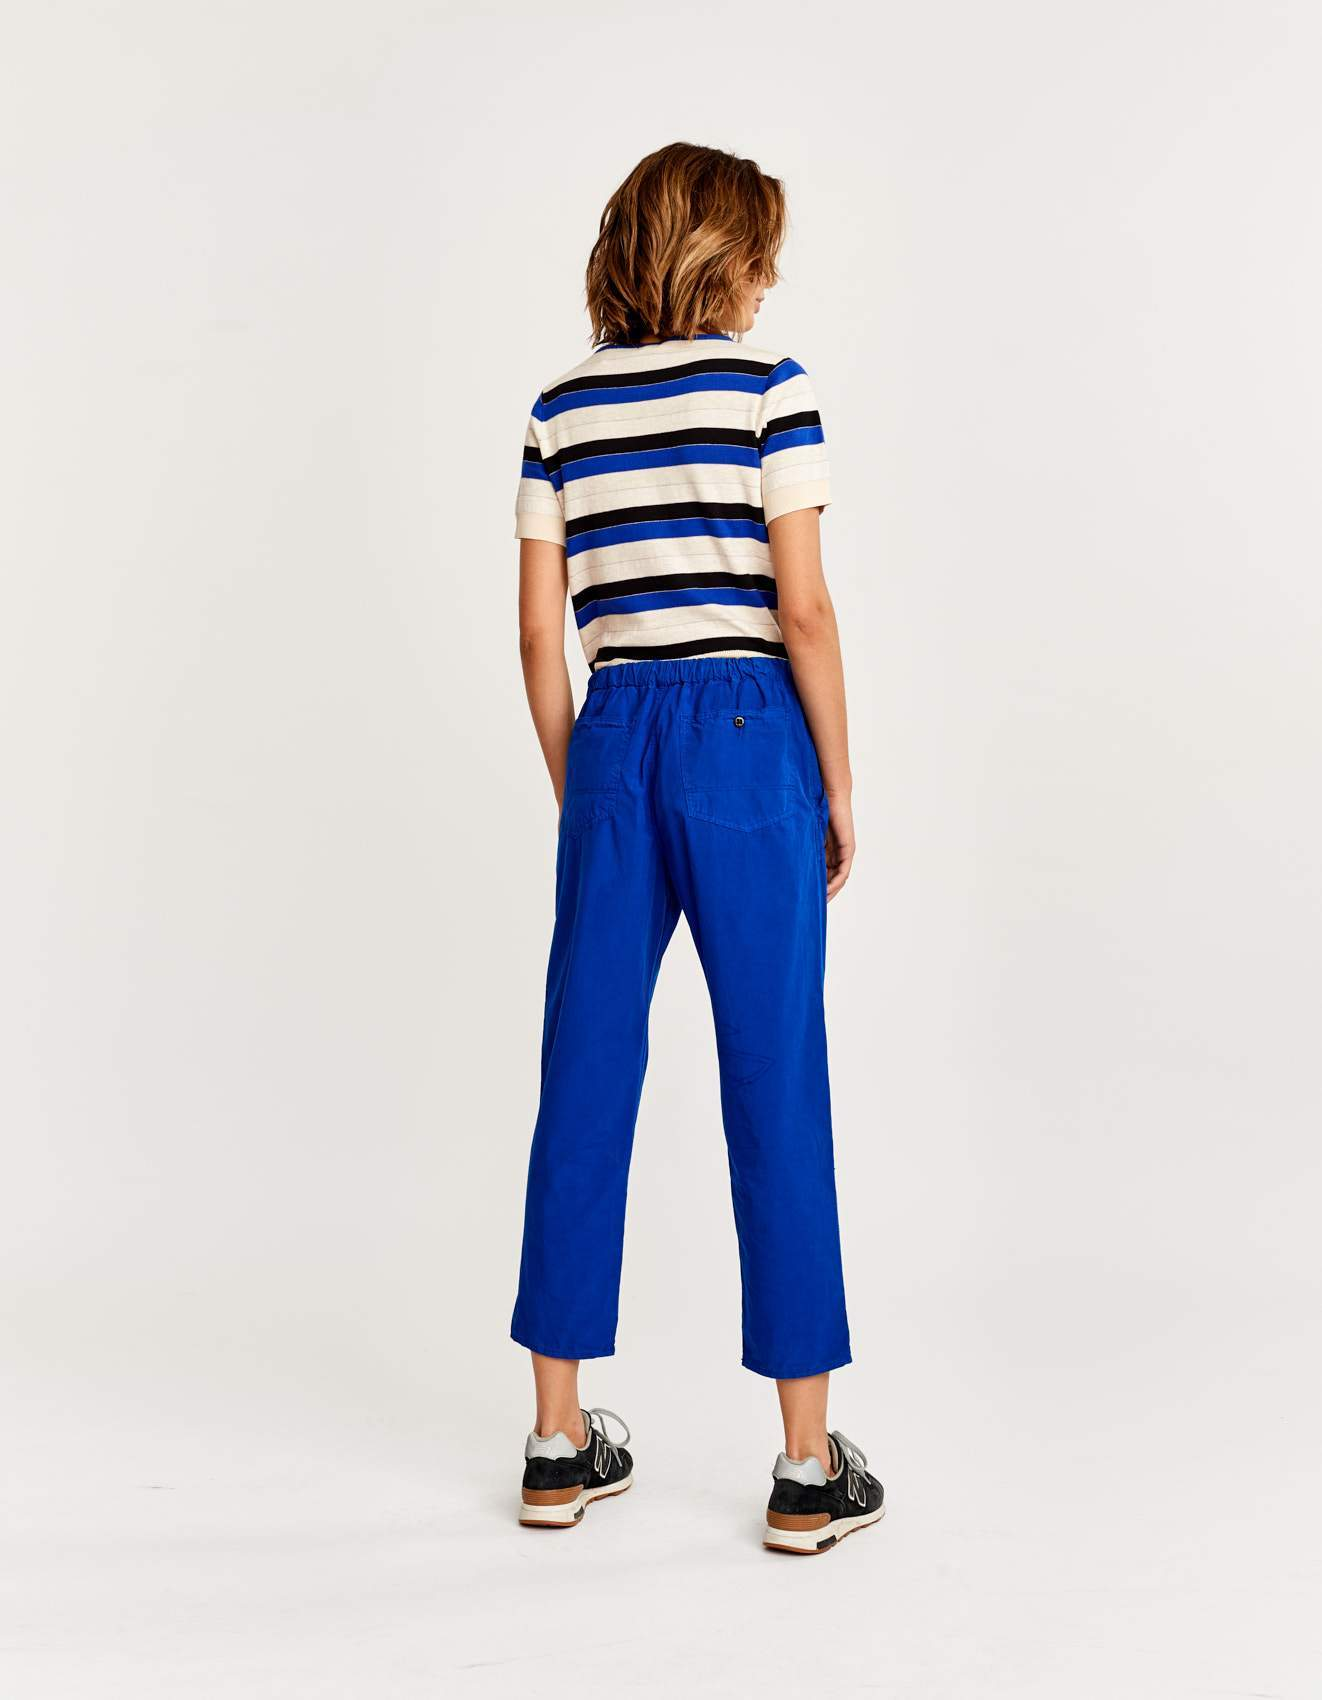 Bellerose blue workwear inpired pants for women